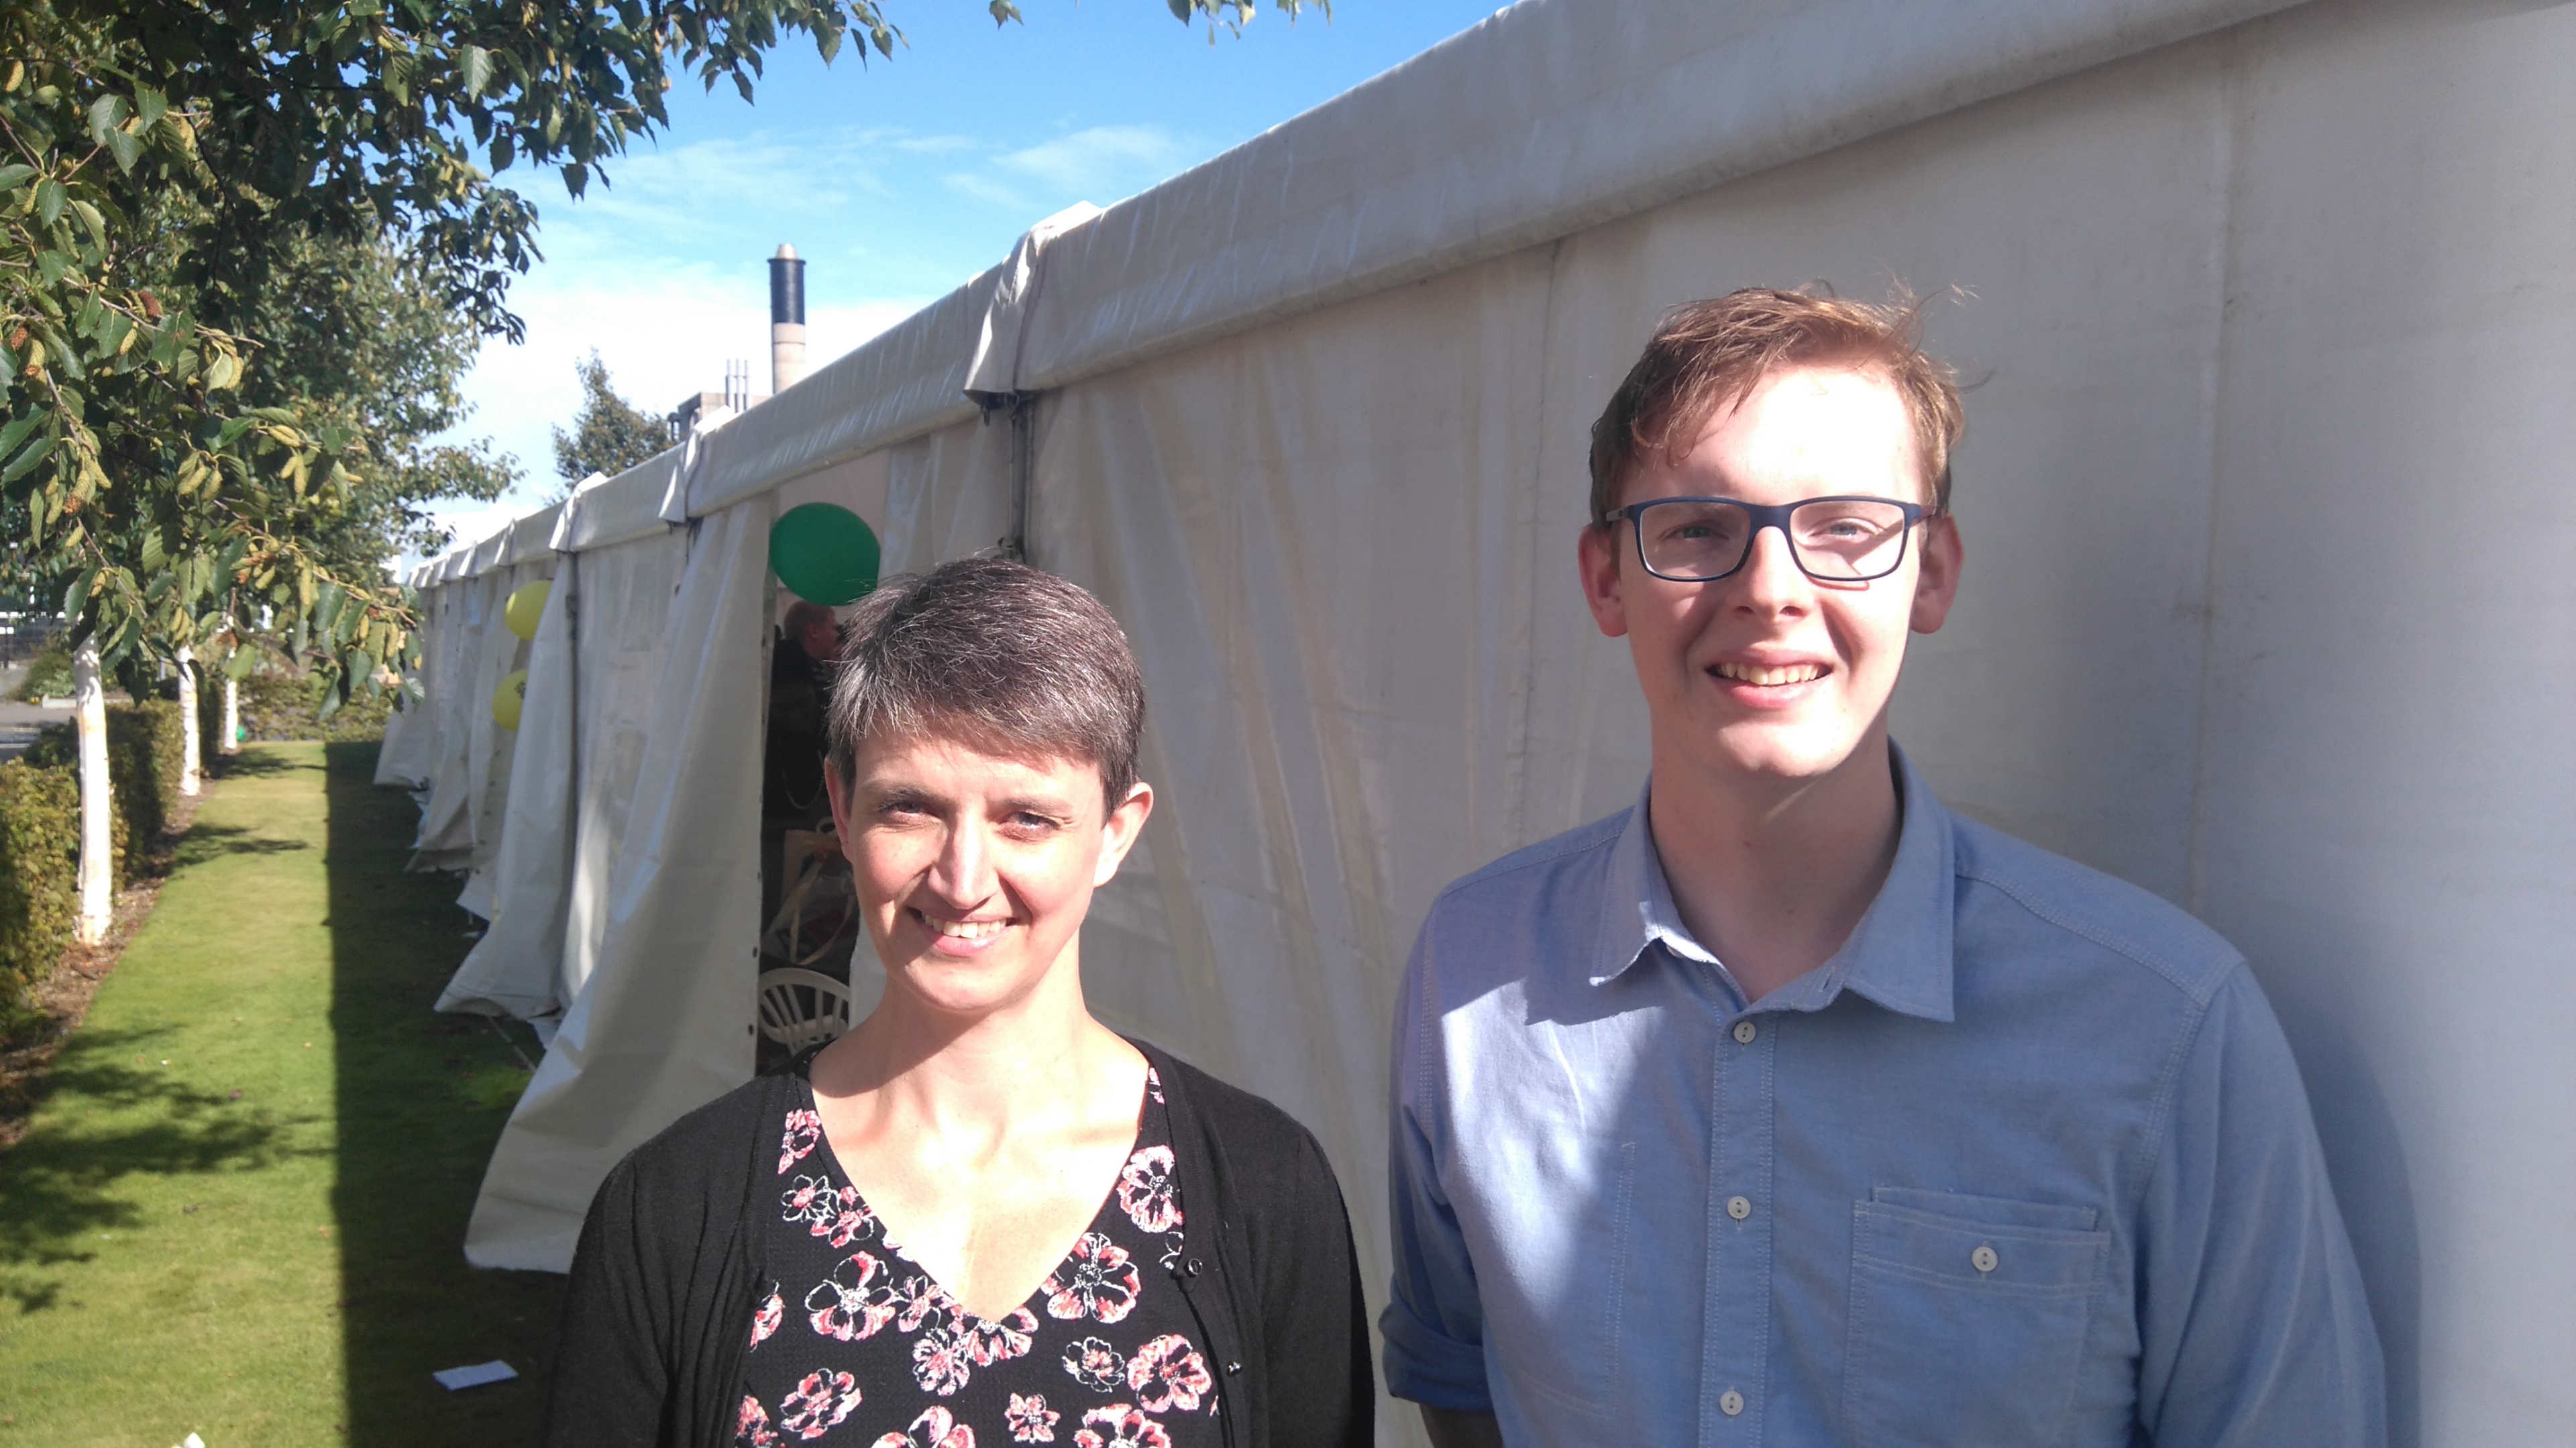 Scottish Green Party co-convener Maggie Chapman and Care for Caird activist Craig Forstyh